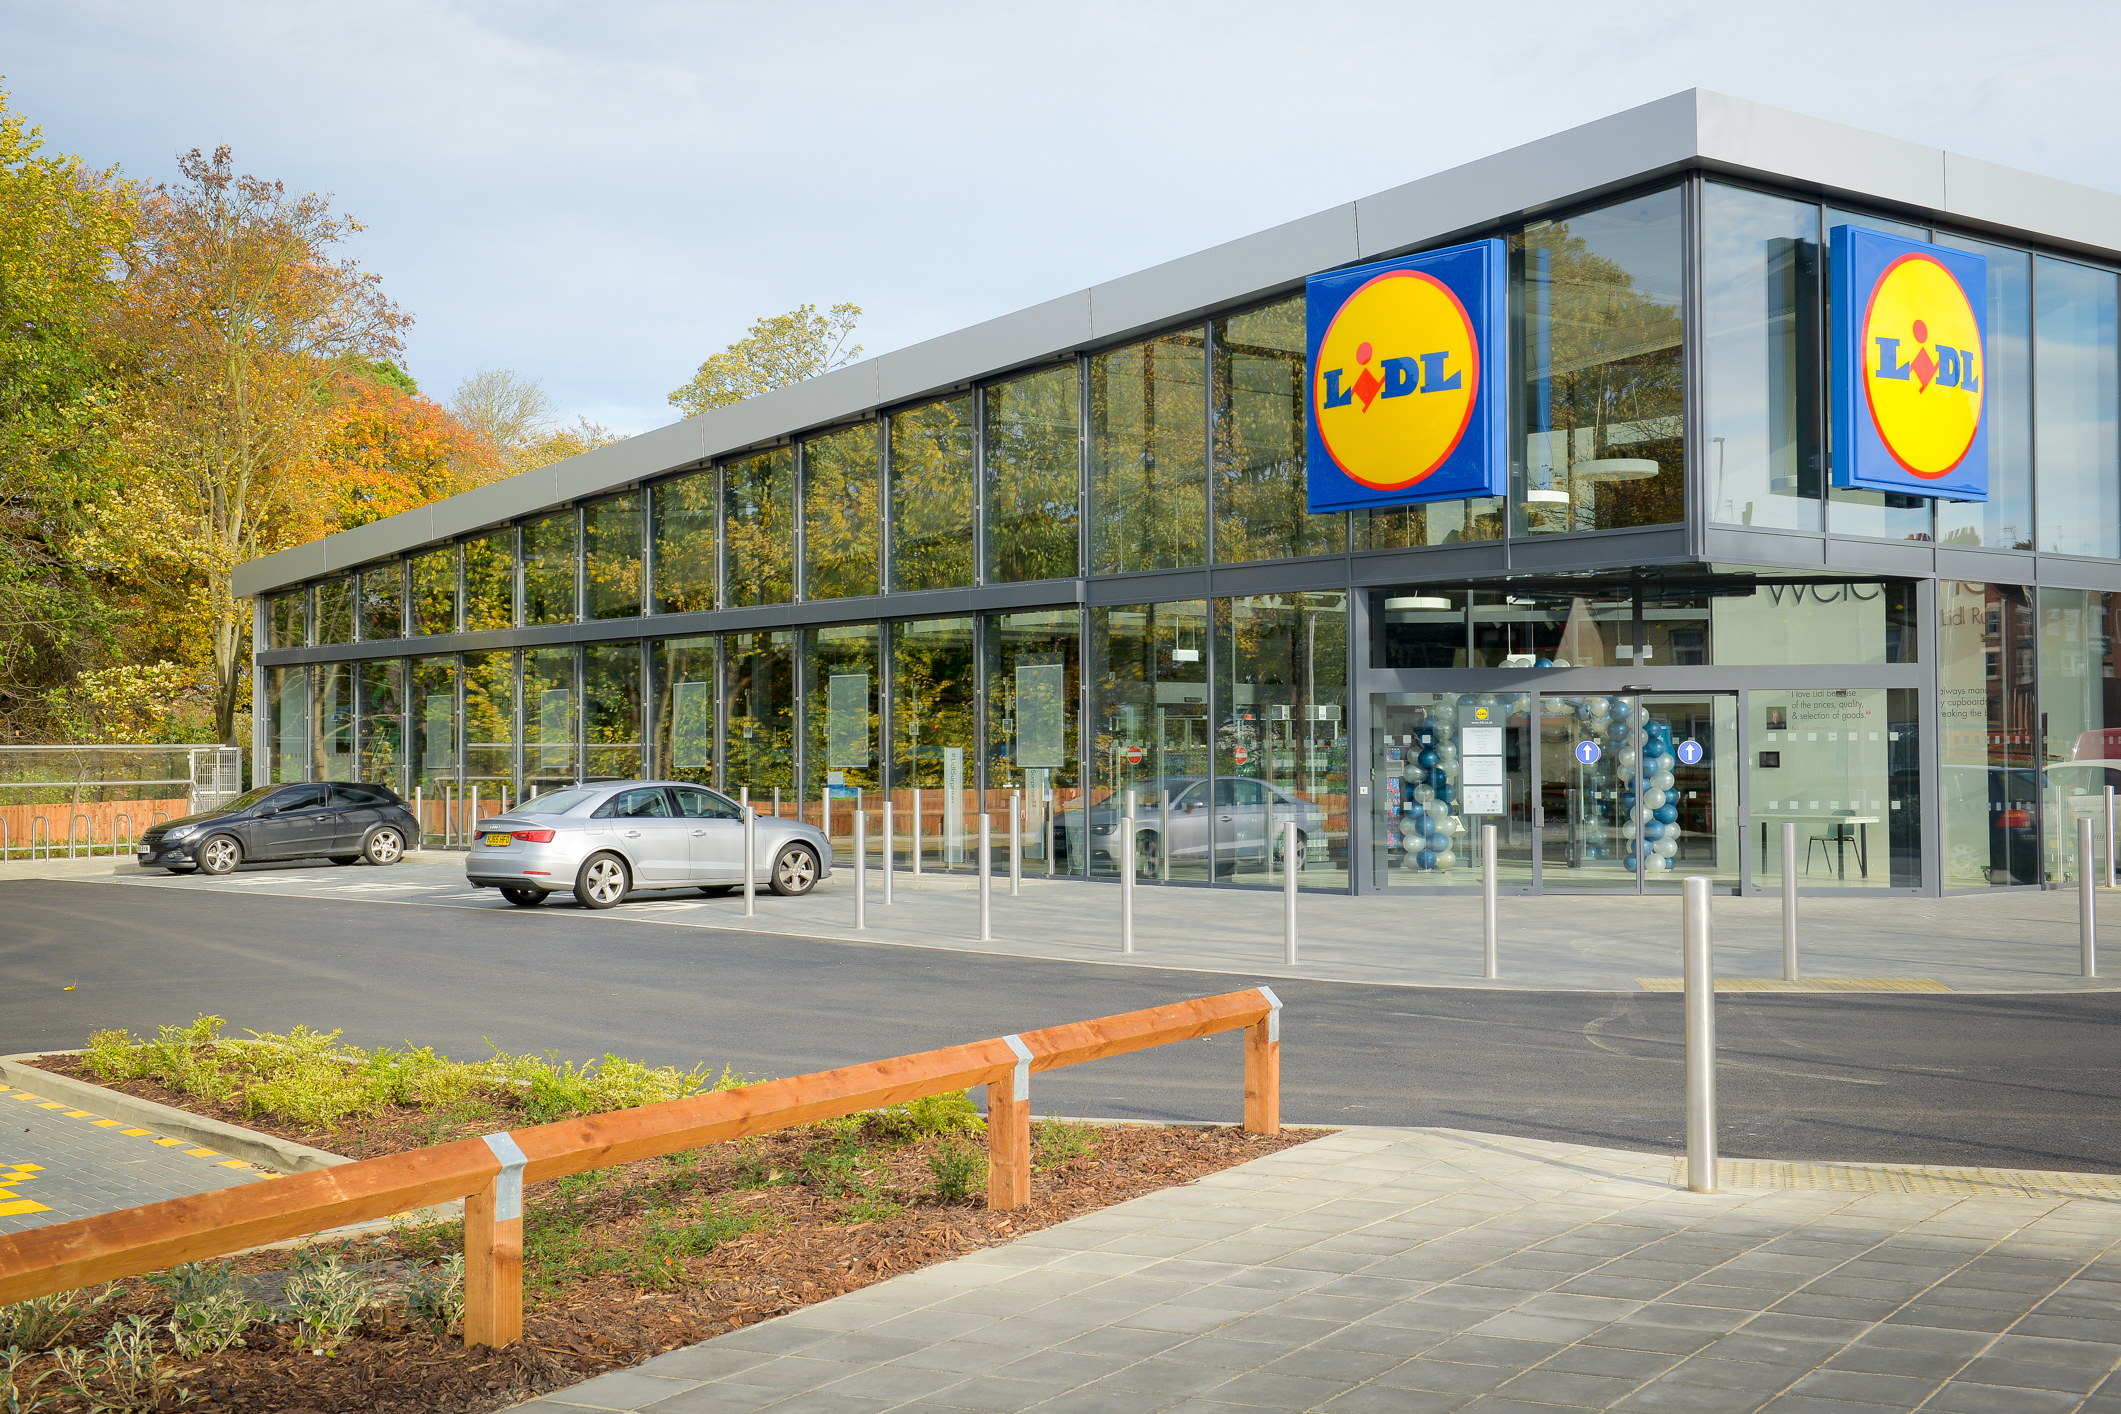 Lidl Compra Online First Look At New Lidl As Supermarket Gets Go Ahead Bournemouth Echo